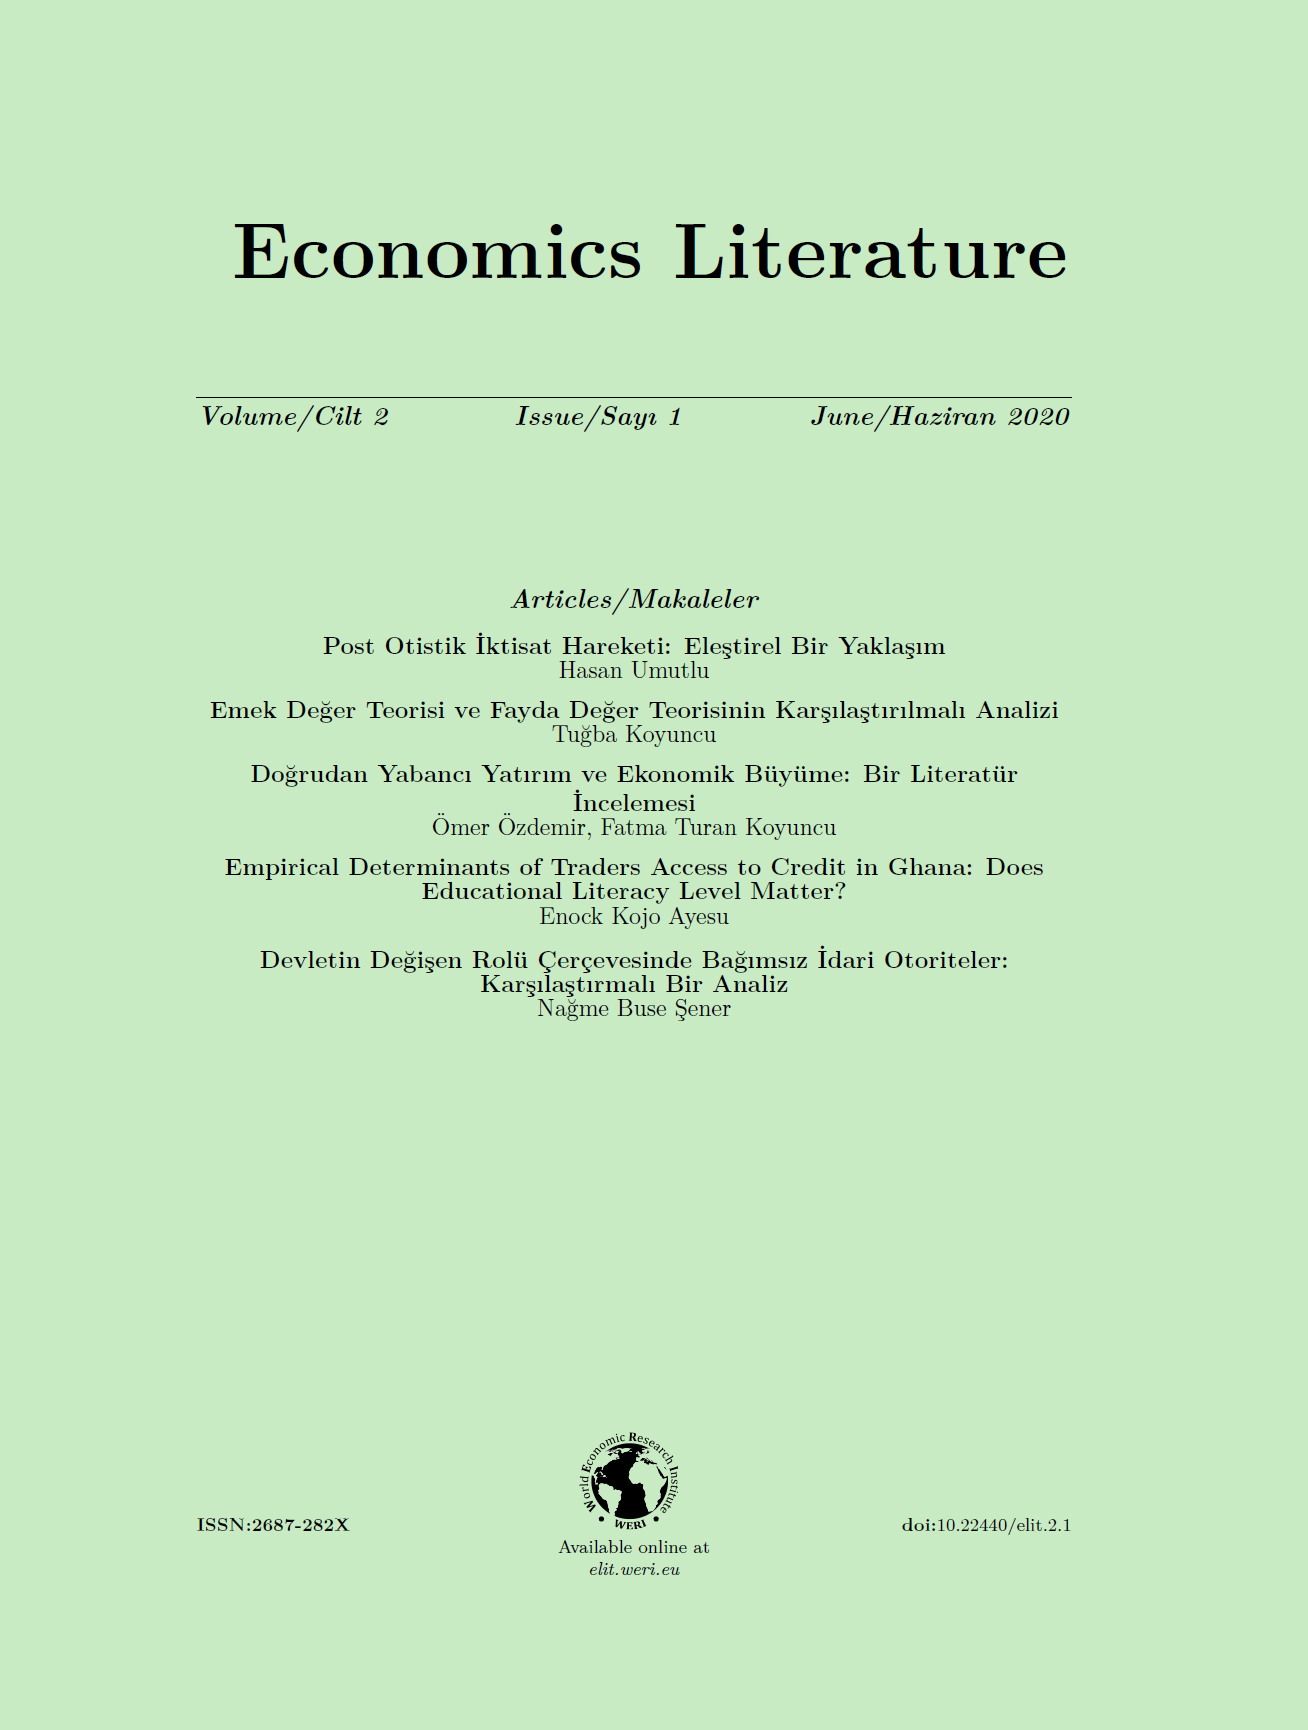 Economics Literature-Asos İndeks